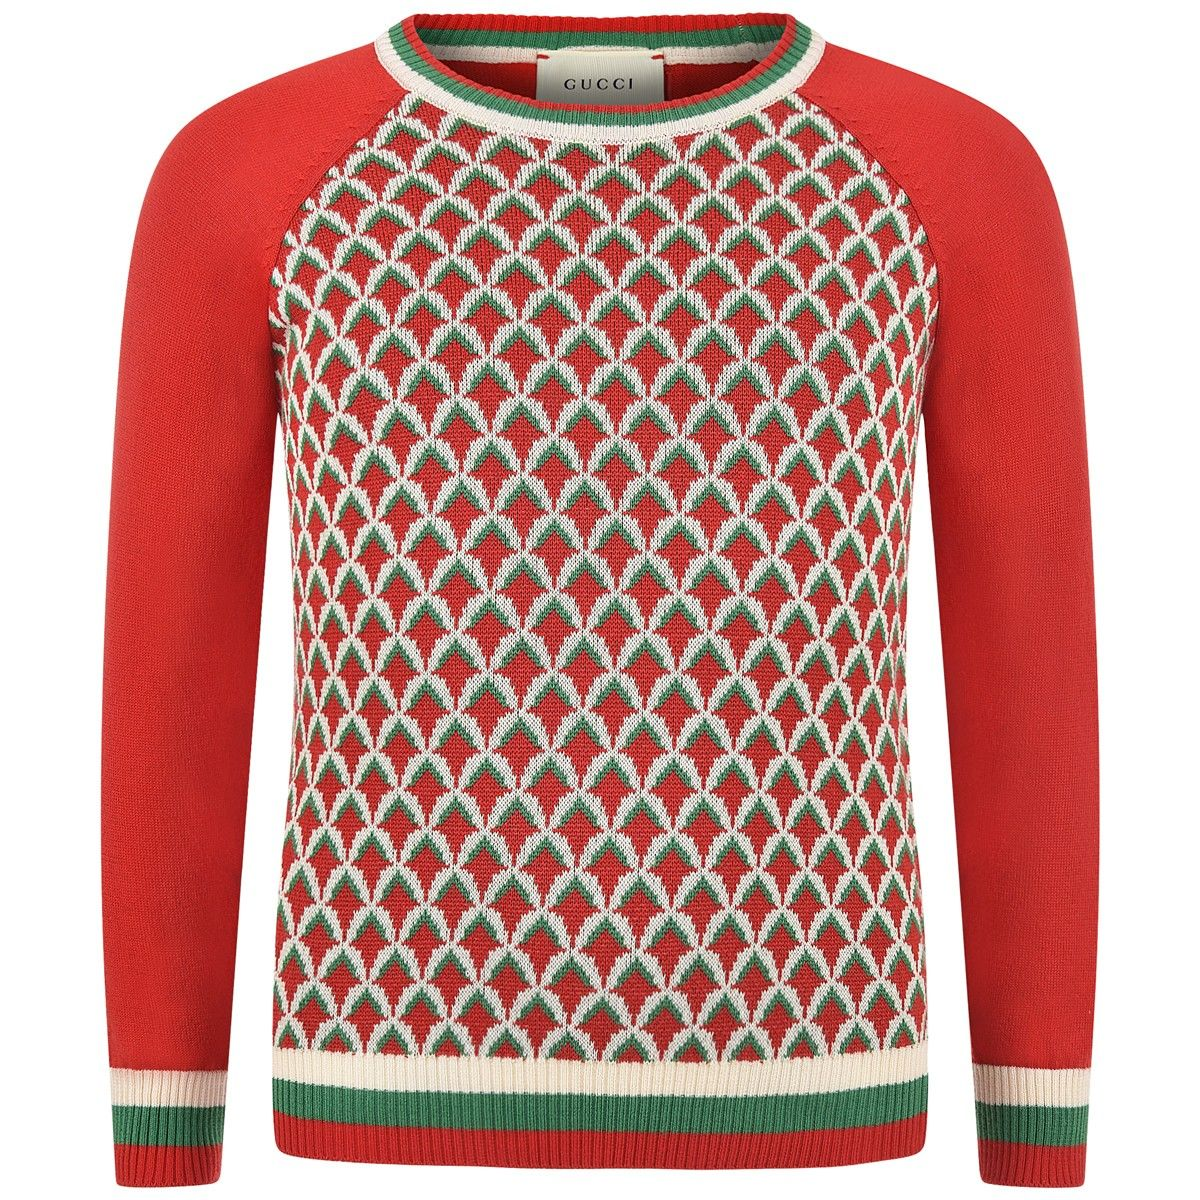 GUCCI Boys Red & Green Patterned Sweater | Parenting | Pinterest ...